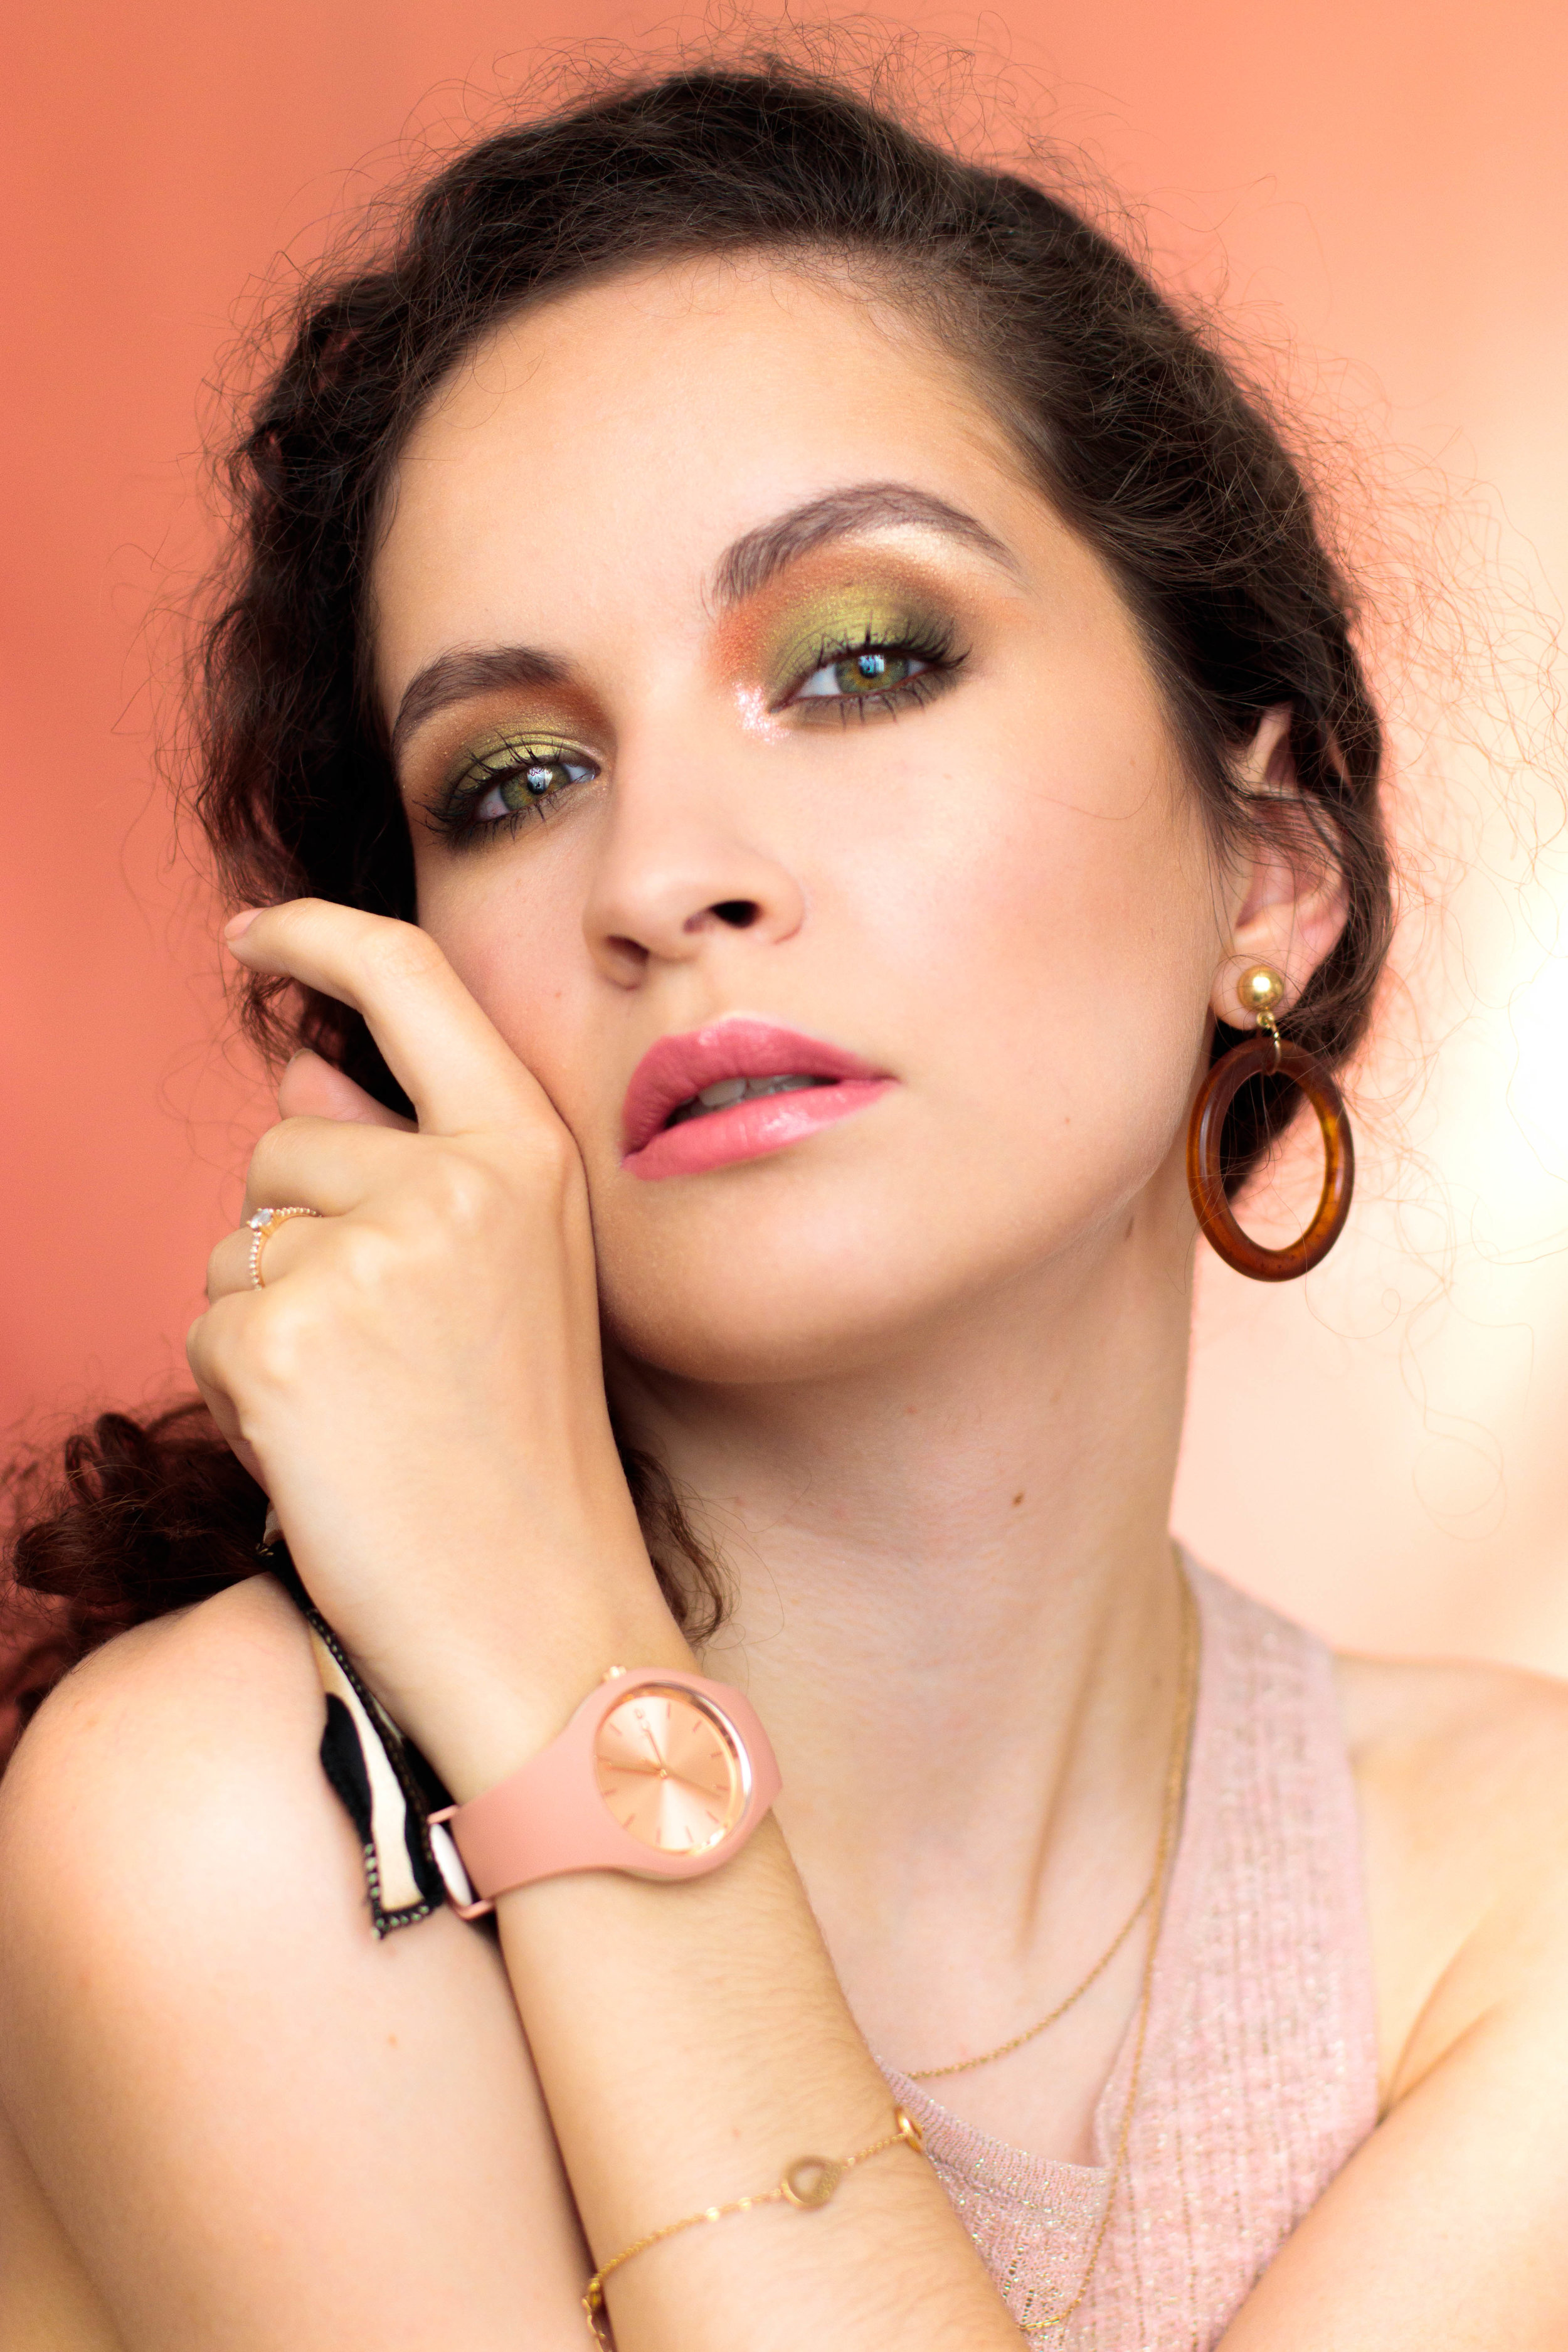 ice-watch-duo-chic-makeup-pauuulette-makeup-revolution-2.jpg